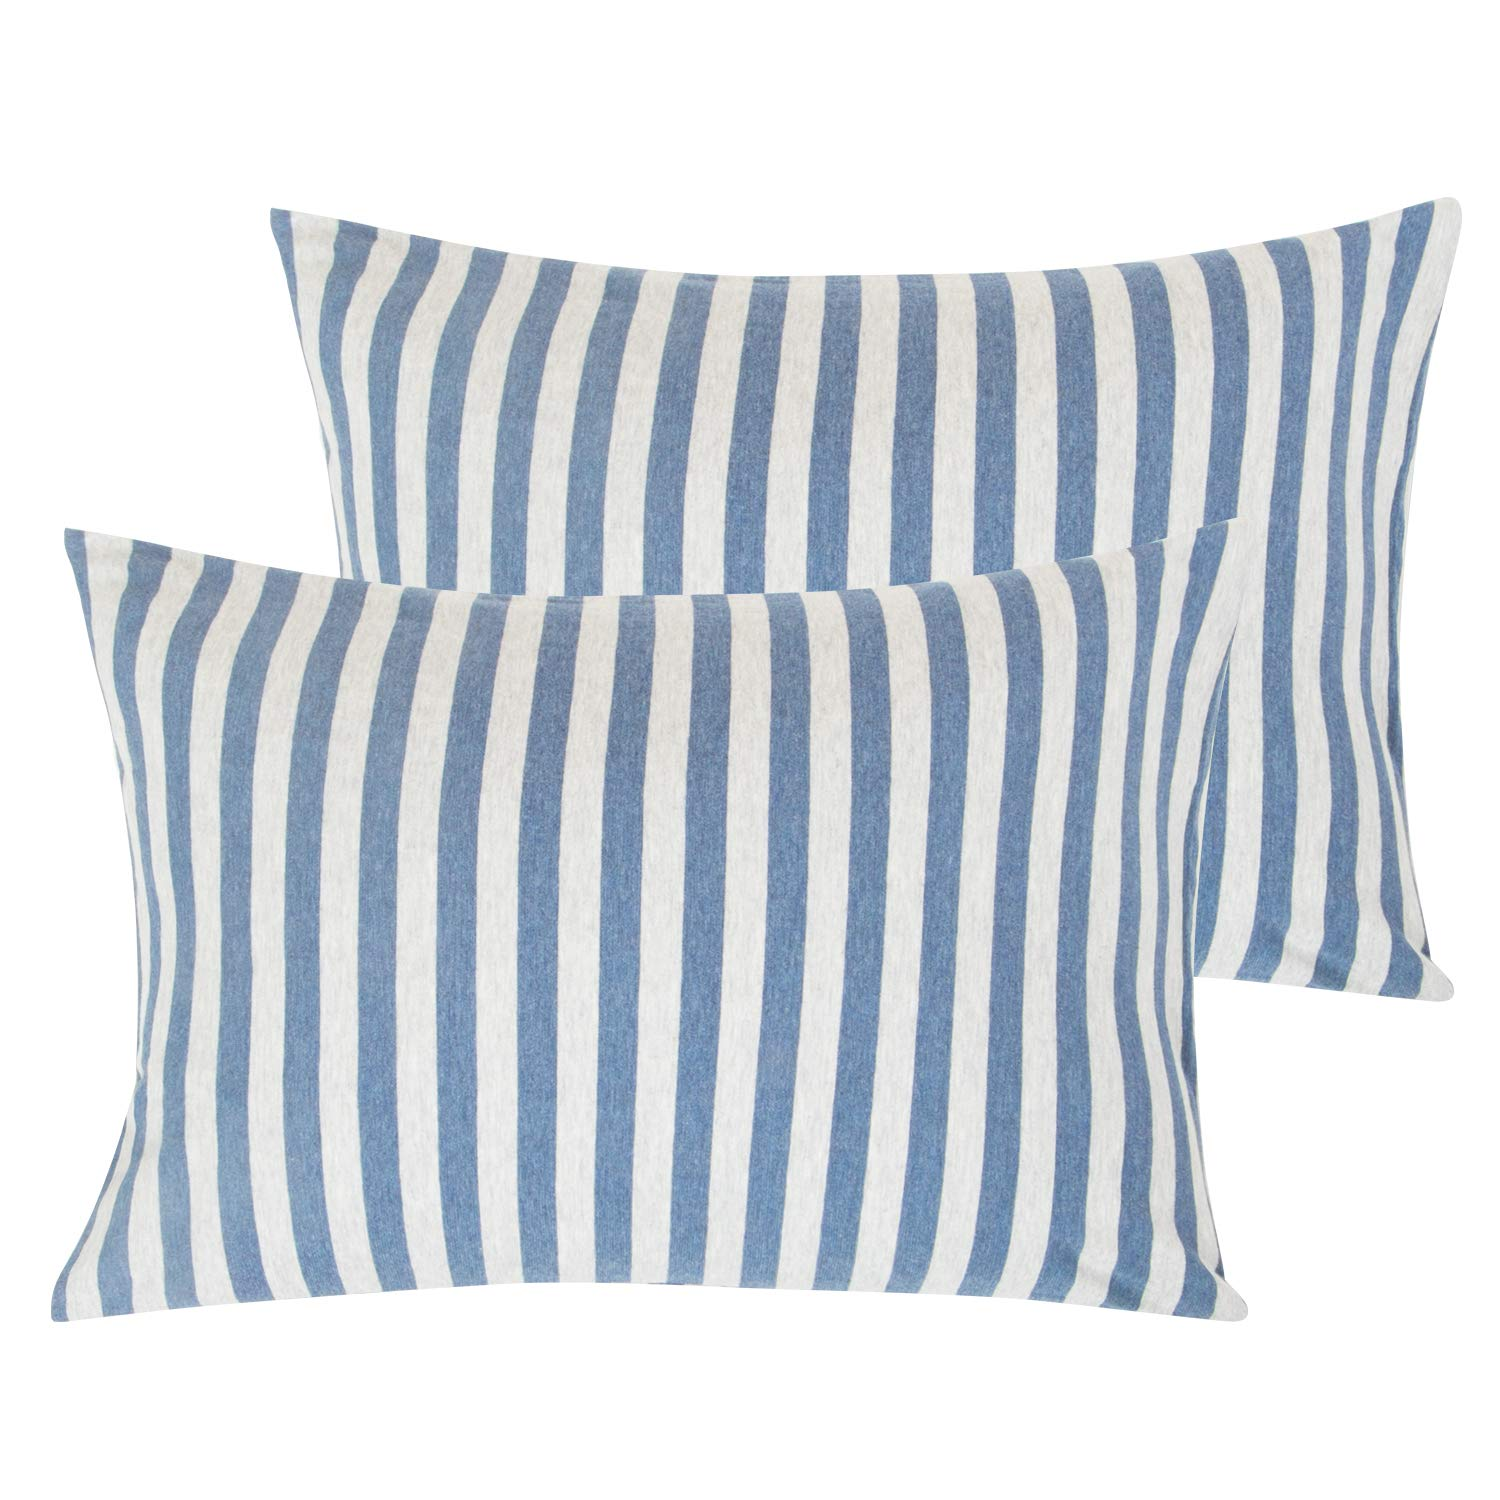 """NTBAY Organic Cotton Toddler Pillowcases, 2 Pcs Soft and Breathable Travel Pillow Cases, 13""""x 18"""", Blue and White"""